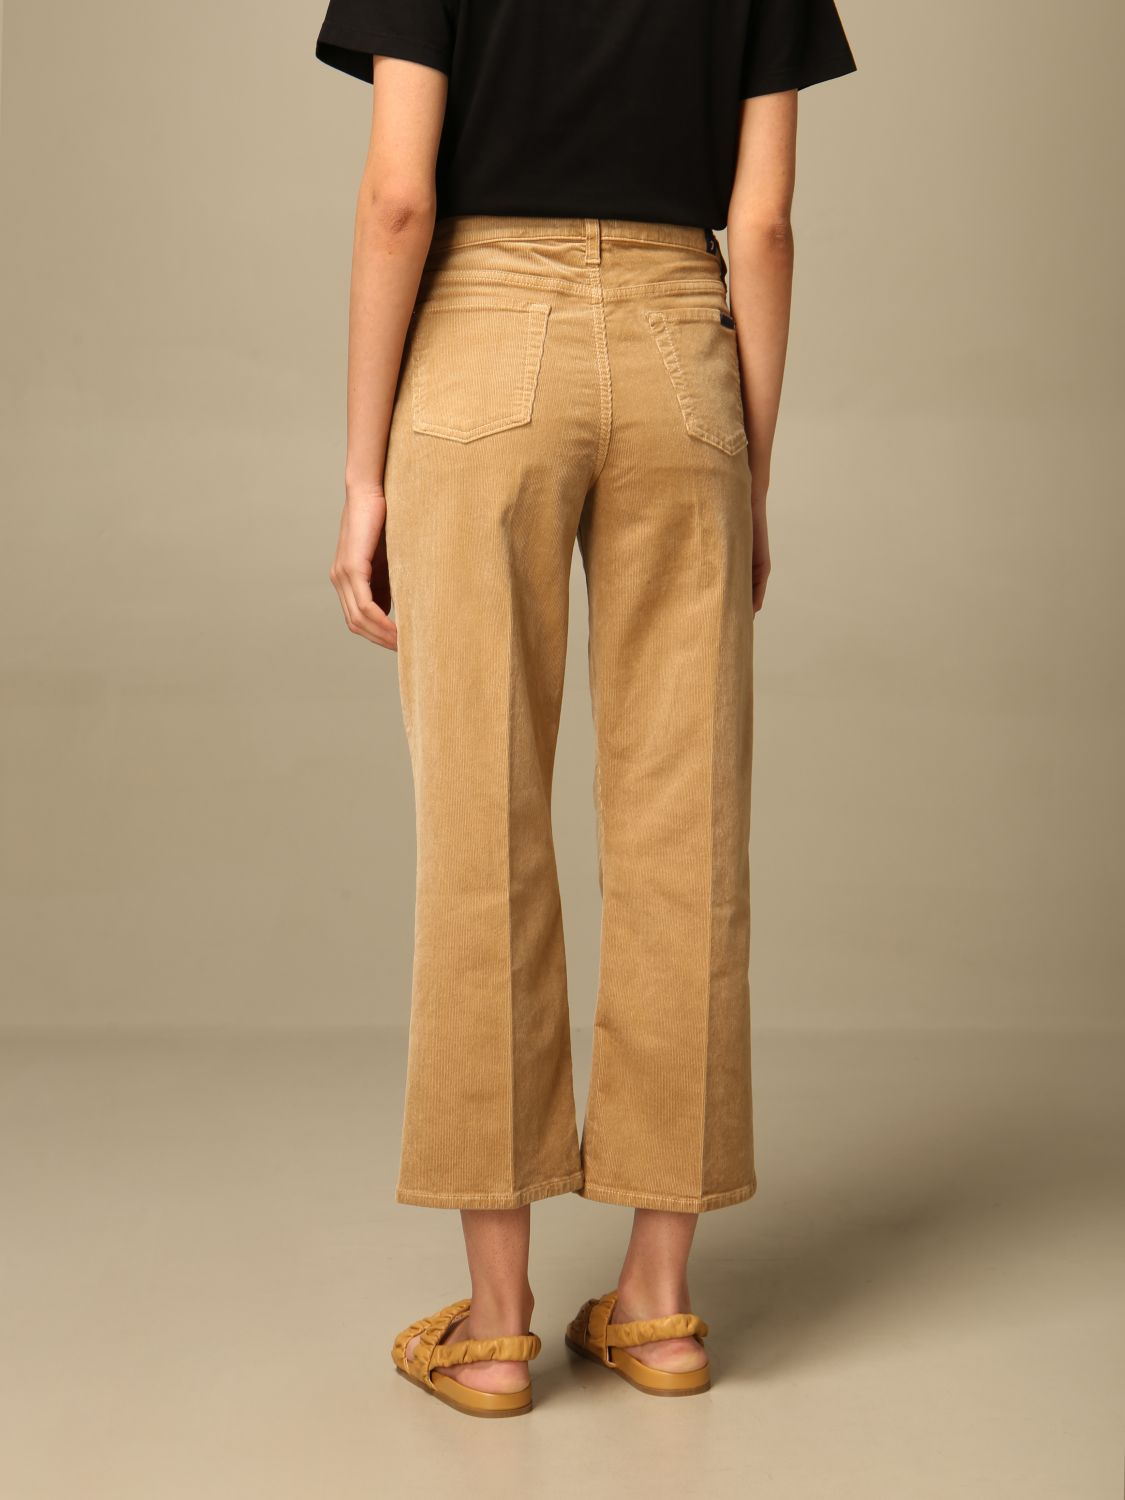 Jeans 7 For All Mankind: Jeans mujer 7 For All Mankind beige 2